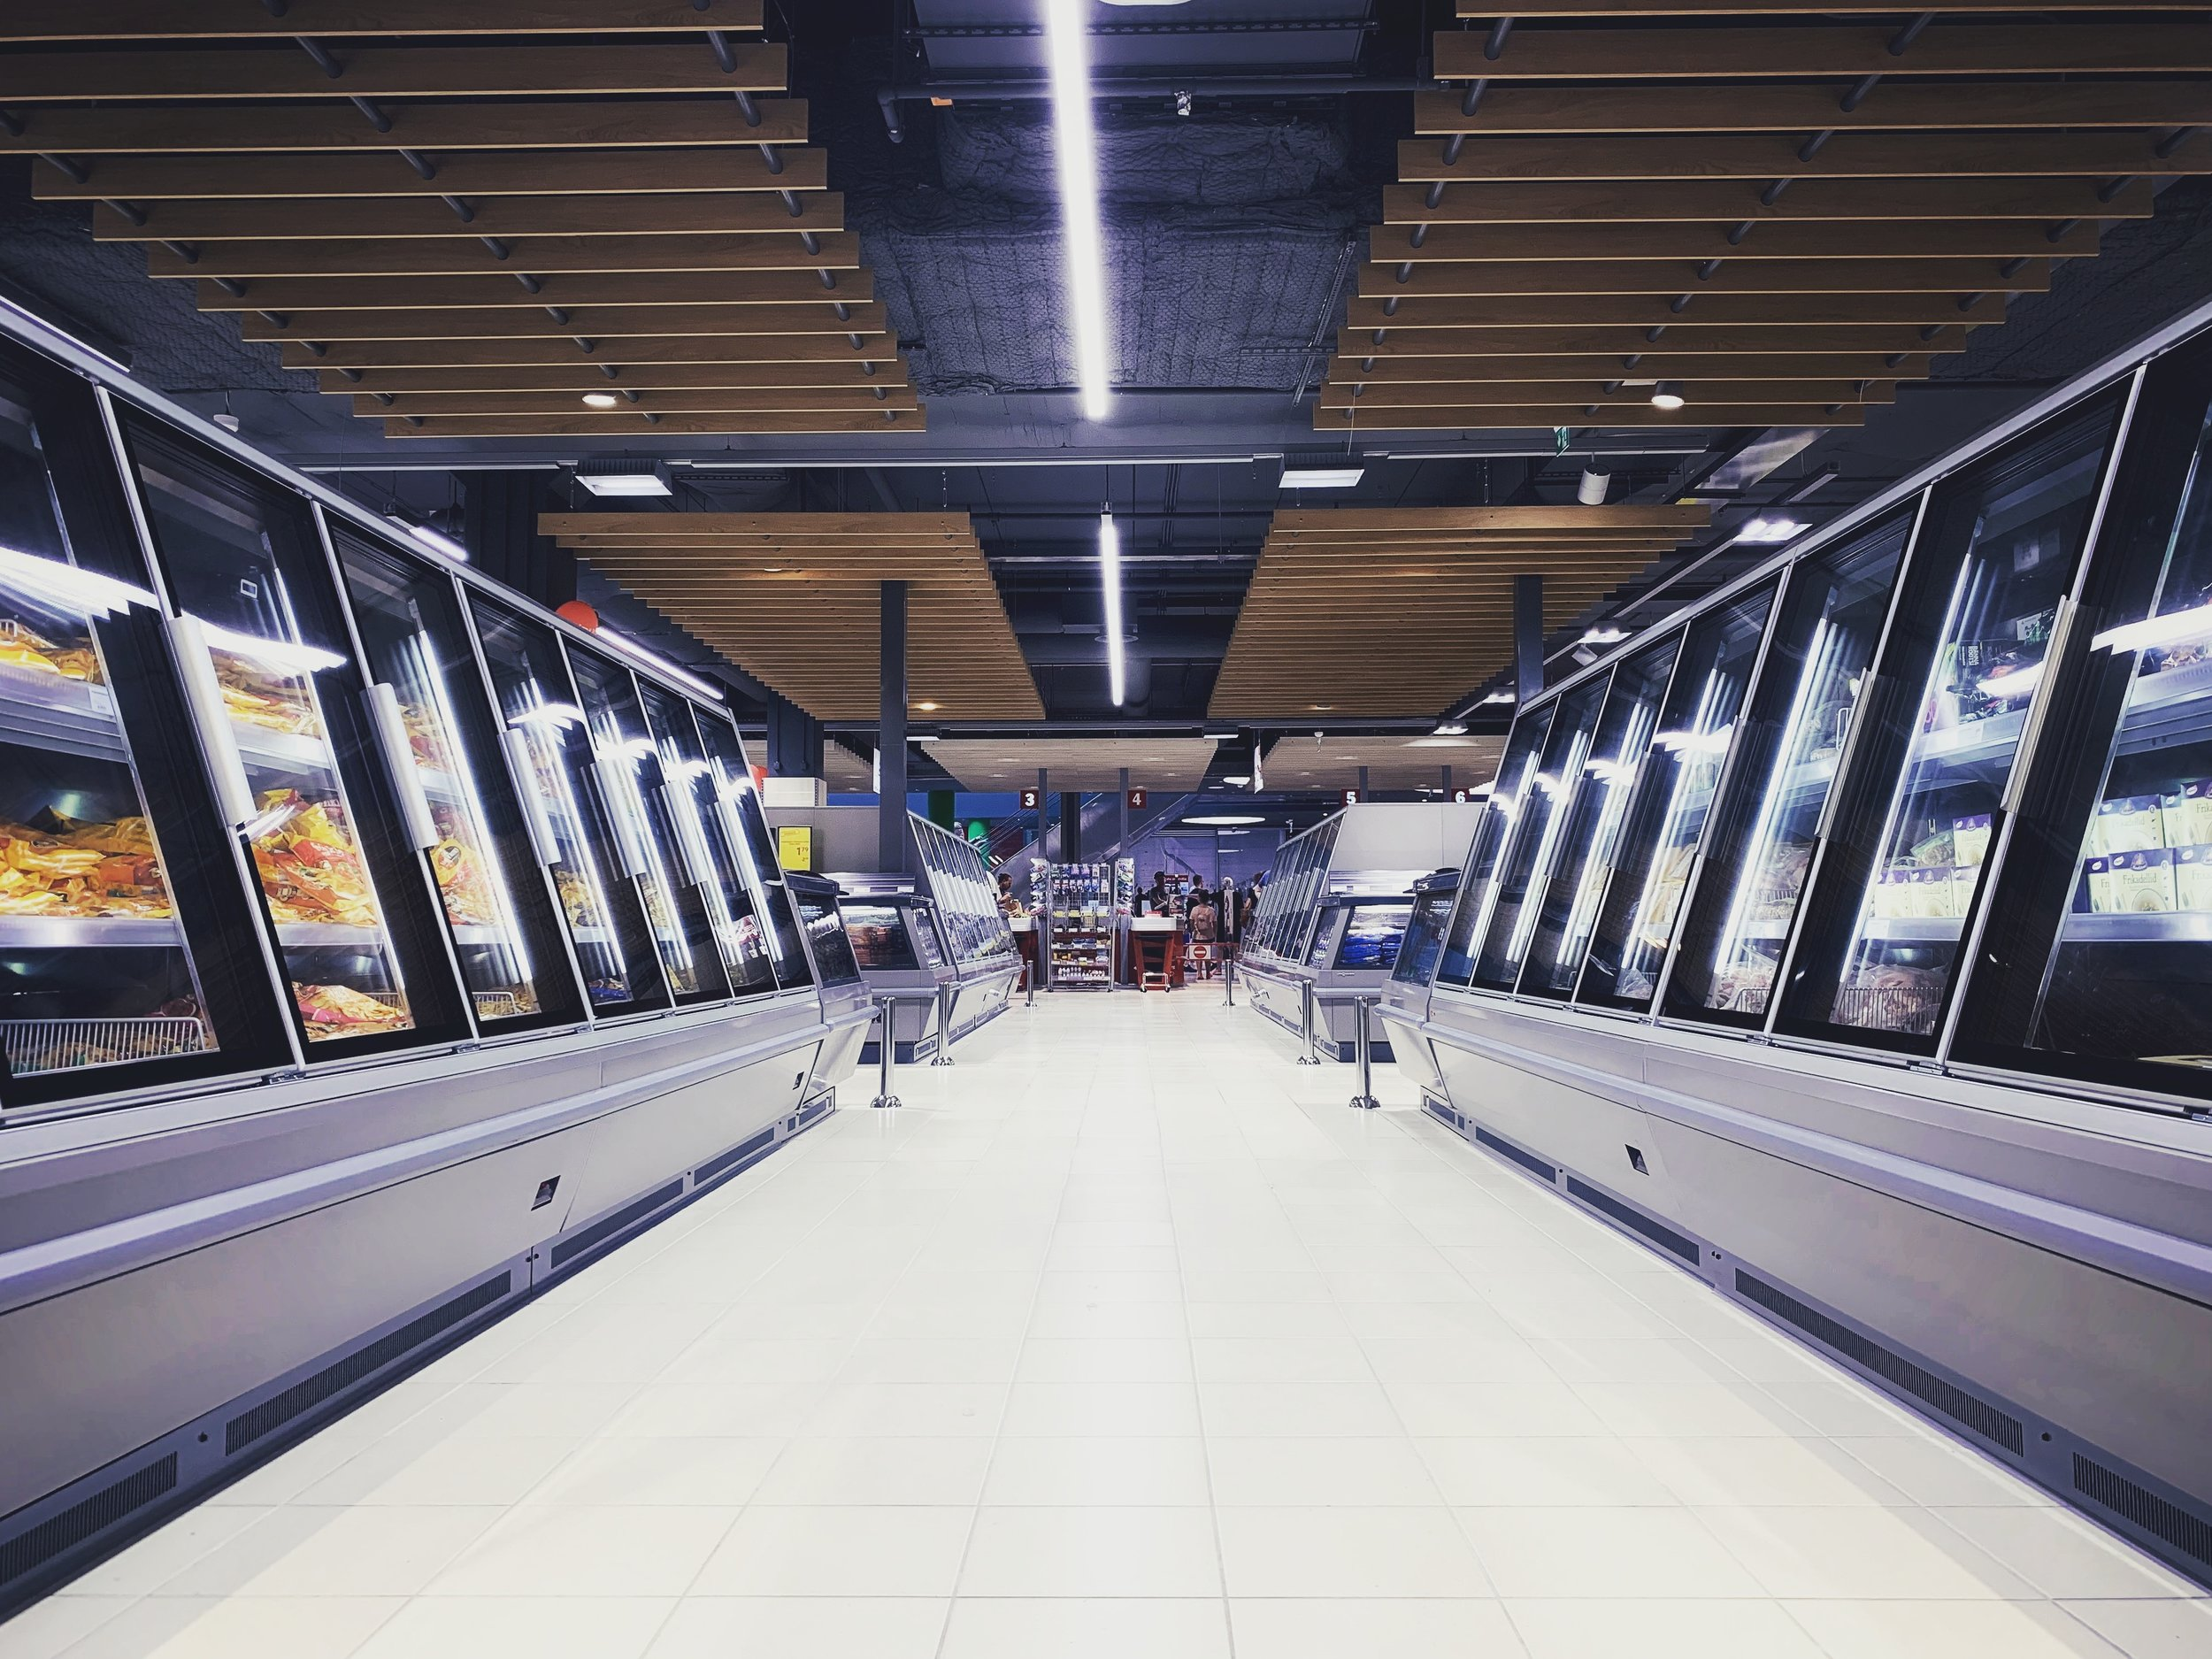 New Retail | Technology Overload in Creating Seamless Retail Experience